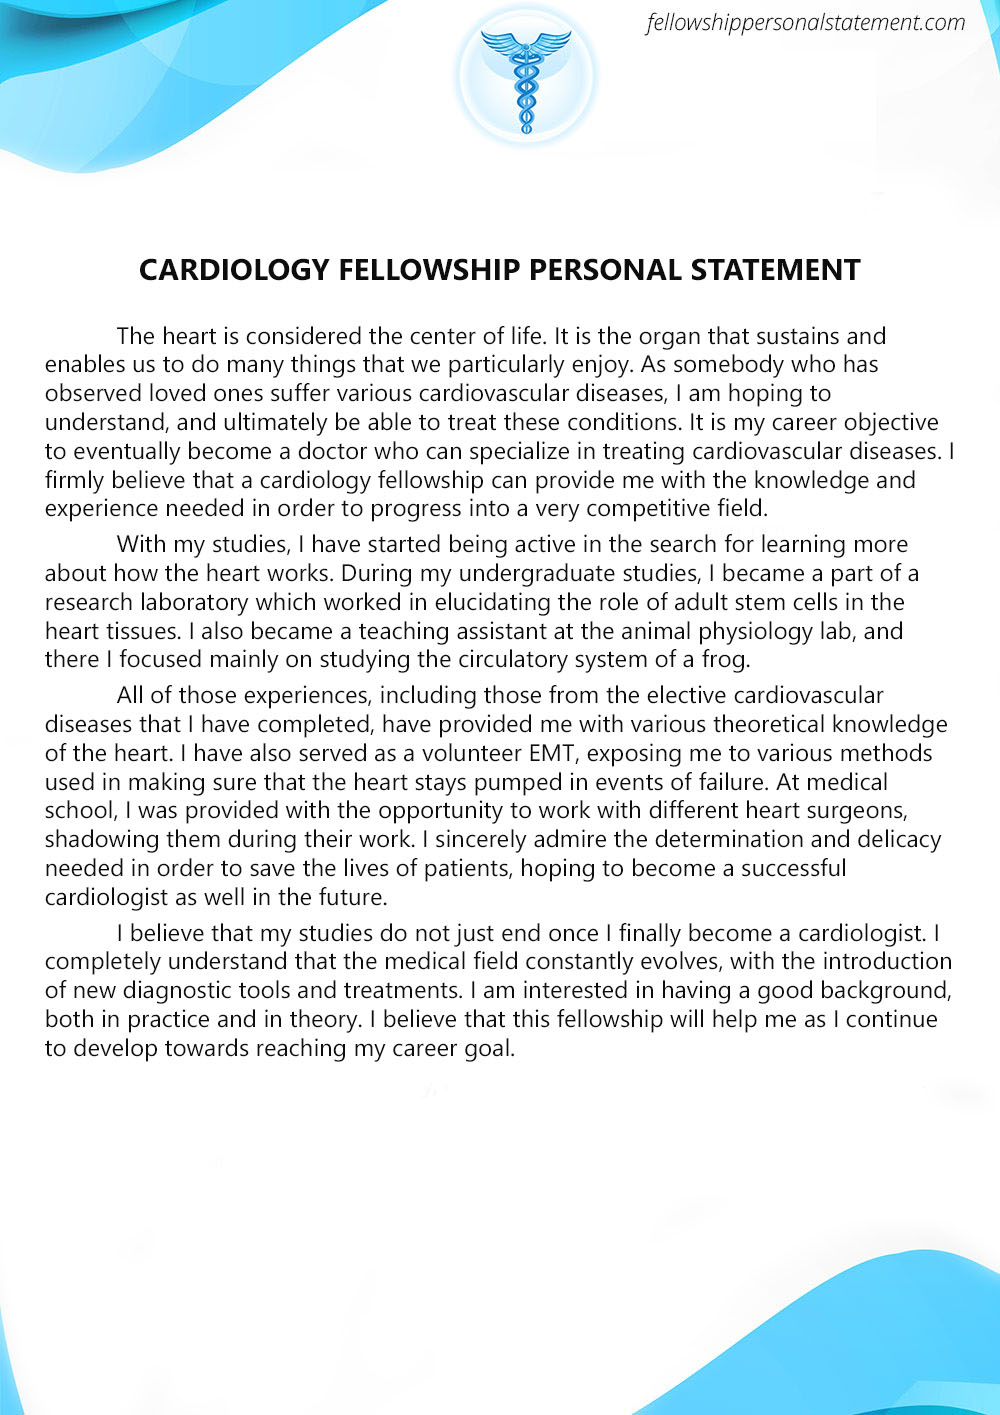 sample personal statement for medical fellowship